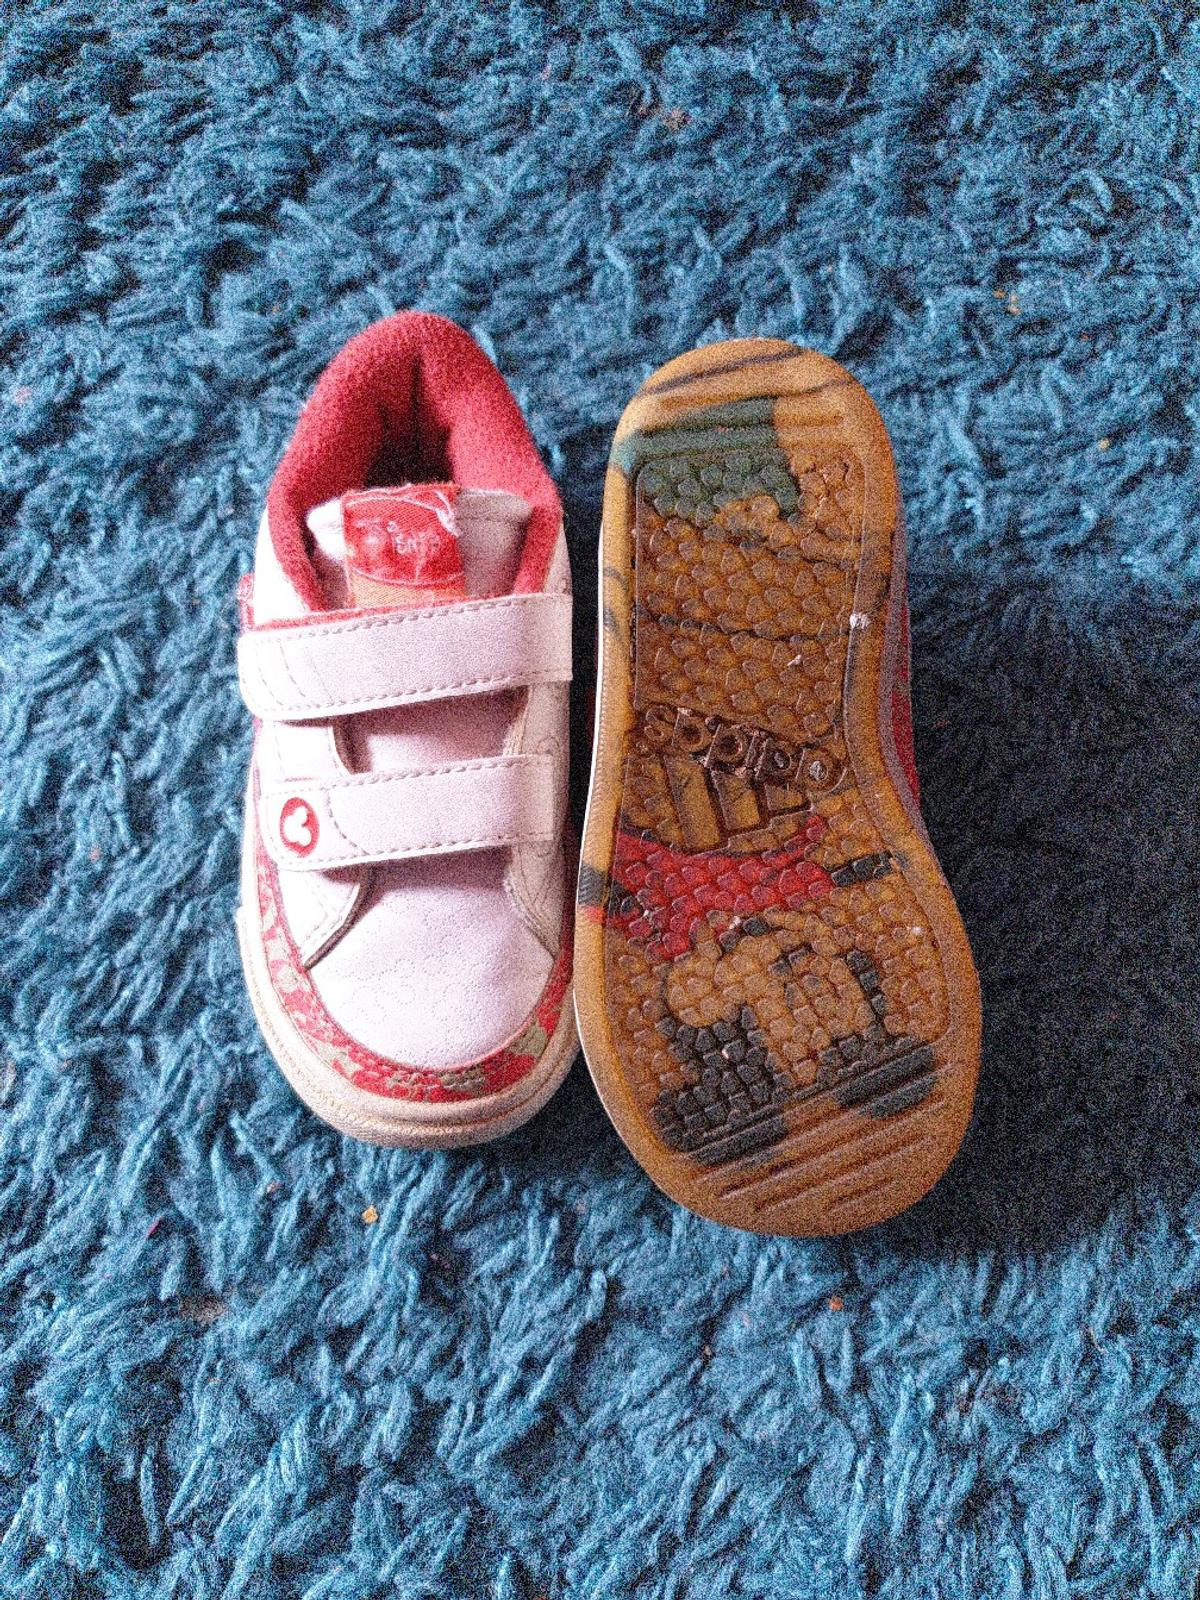 In €3 Disney For Seelze Adidas Micky 00 Sale Schuh Maus wPn08Ok